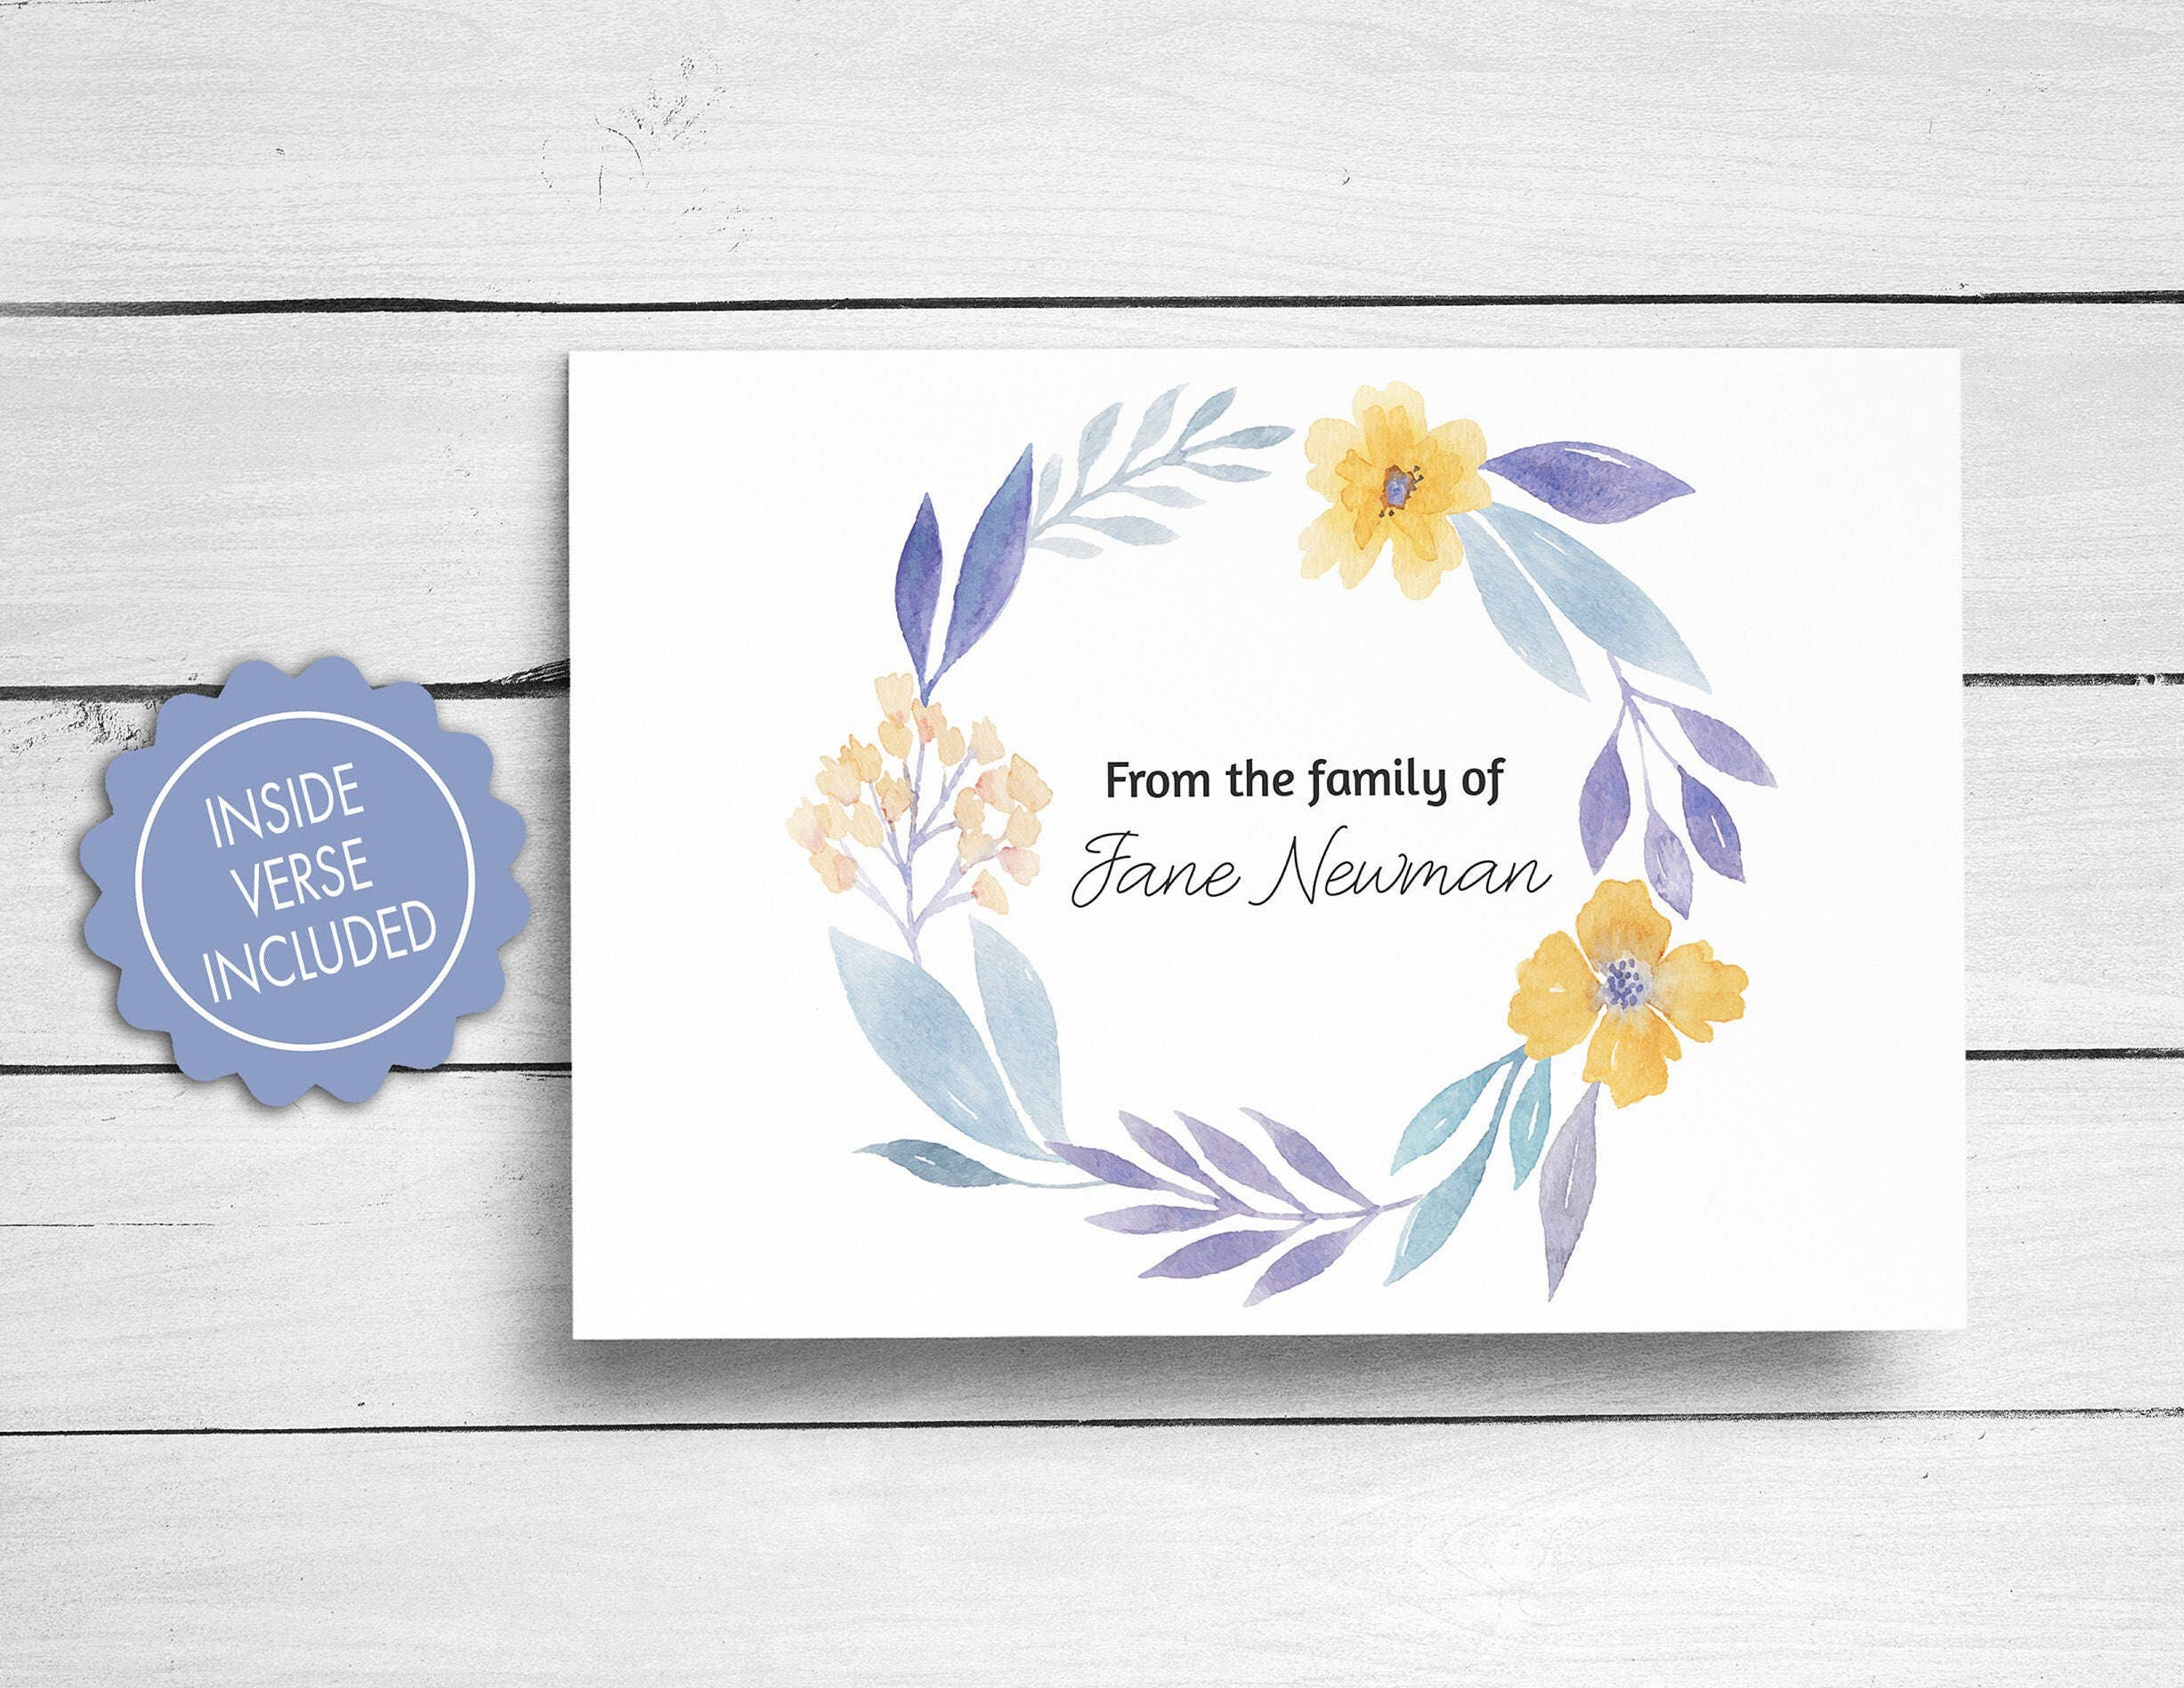 Sympathy acknowledgement cards funeral thank you cards bereavement sympathy acknowledgement cards funeral thank you cards bereavement cards floral funeral cards personalized funeral note cards izmirmasajfo